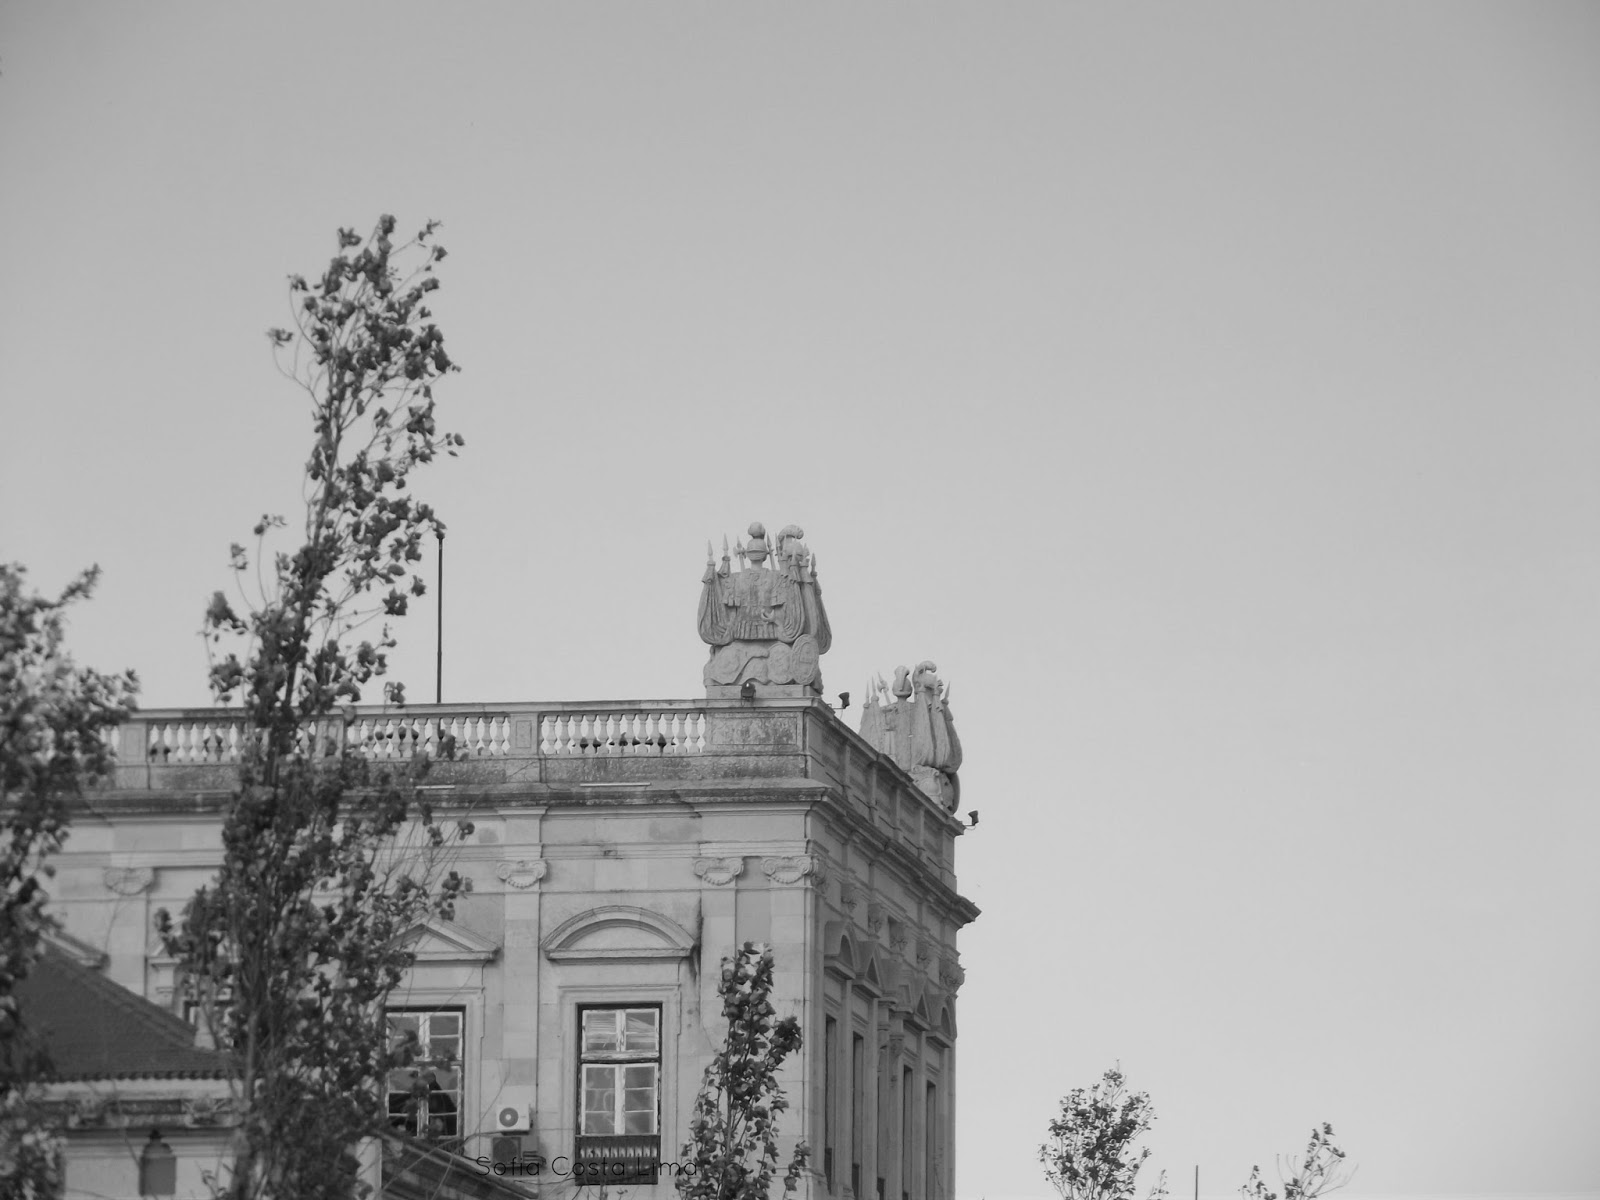 Lisbon (Portugal) in black & white pictures.